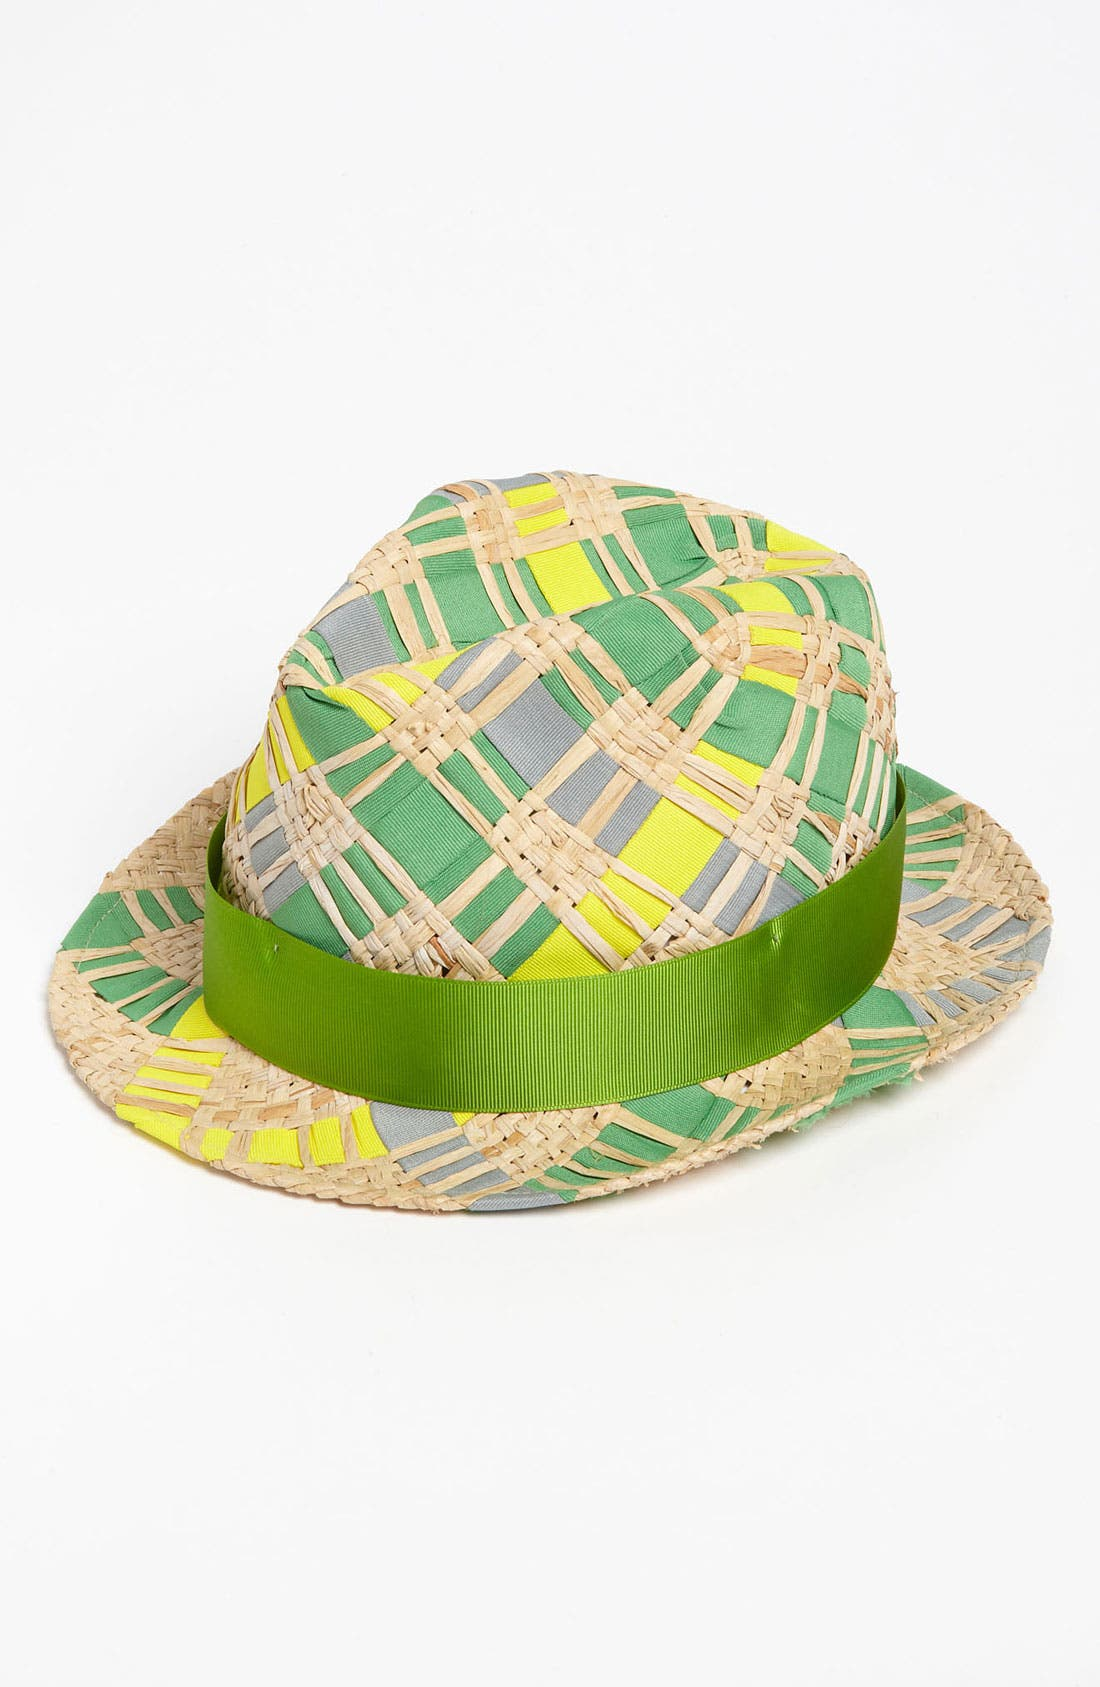 Alternate Image 1 Selected - Jonathan Adler Ribbon & Straw Handwoven Fedora